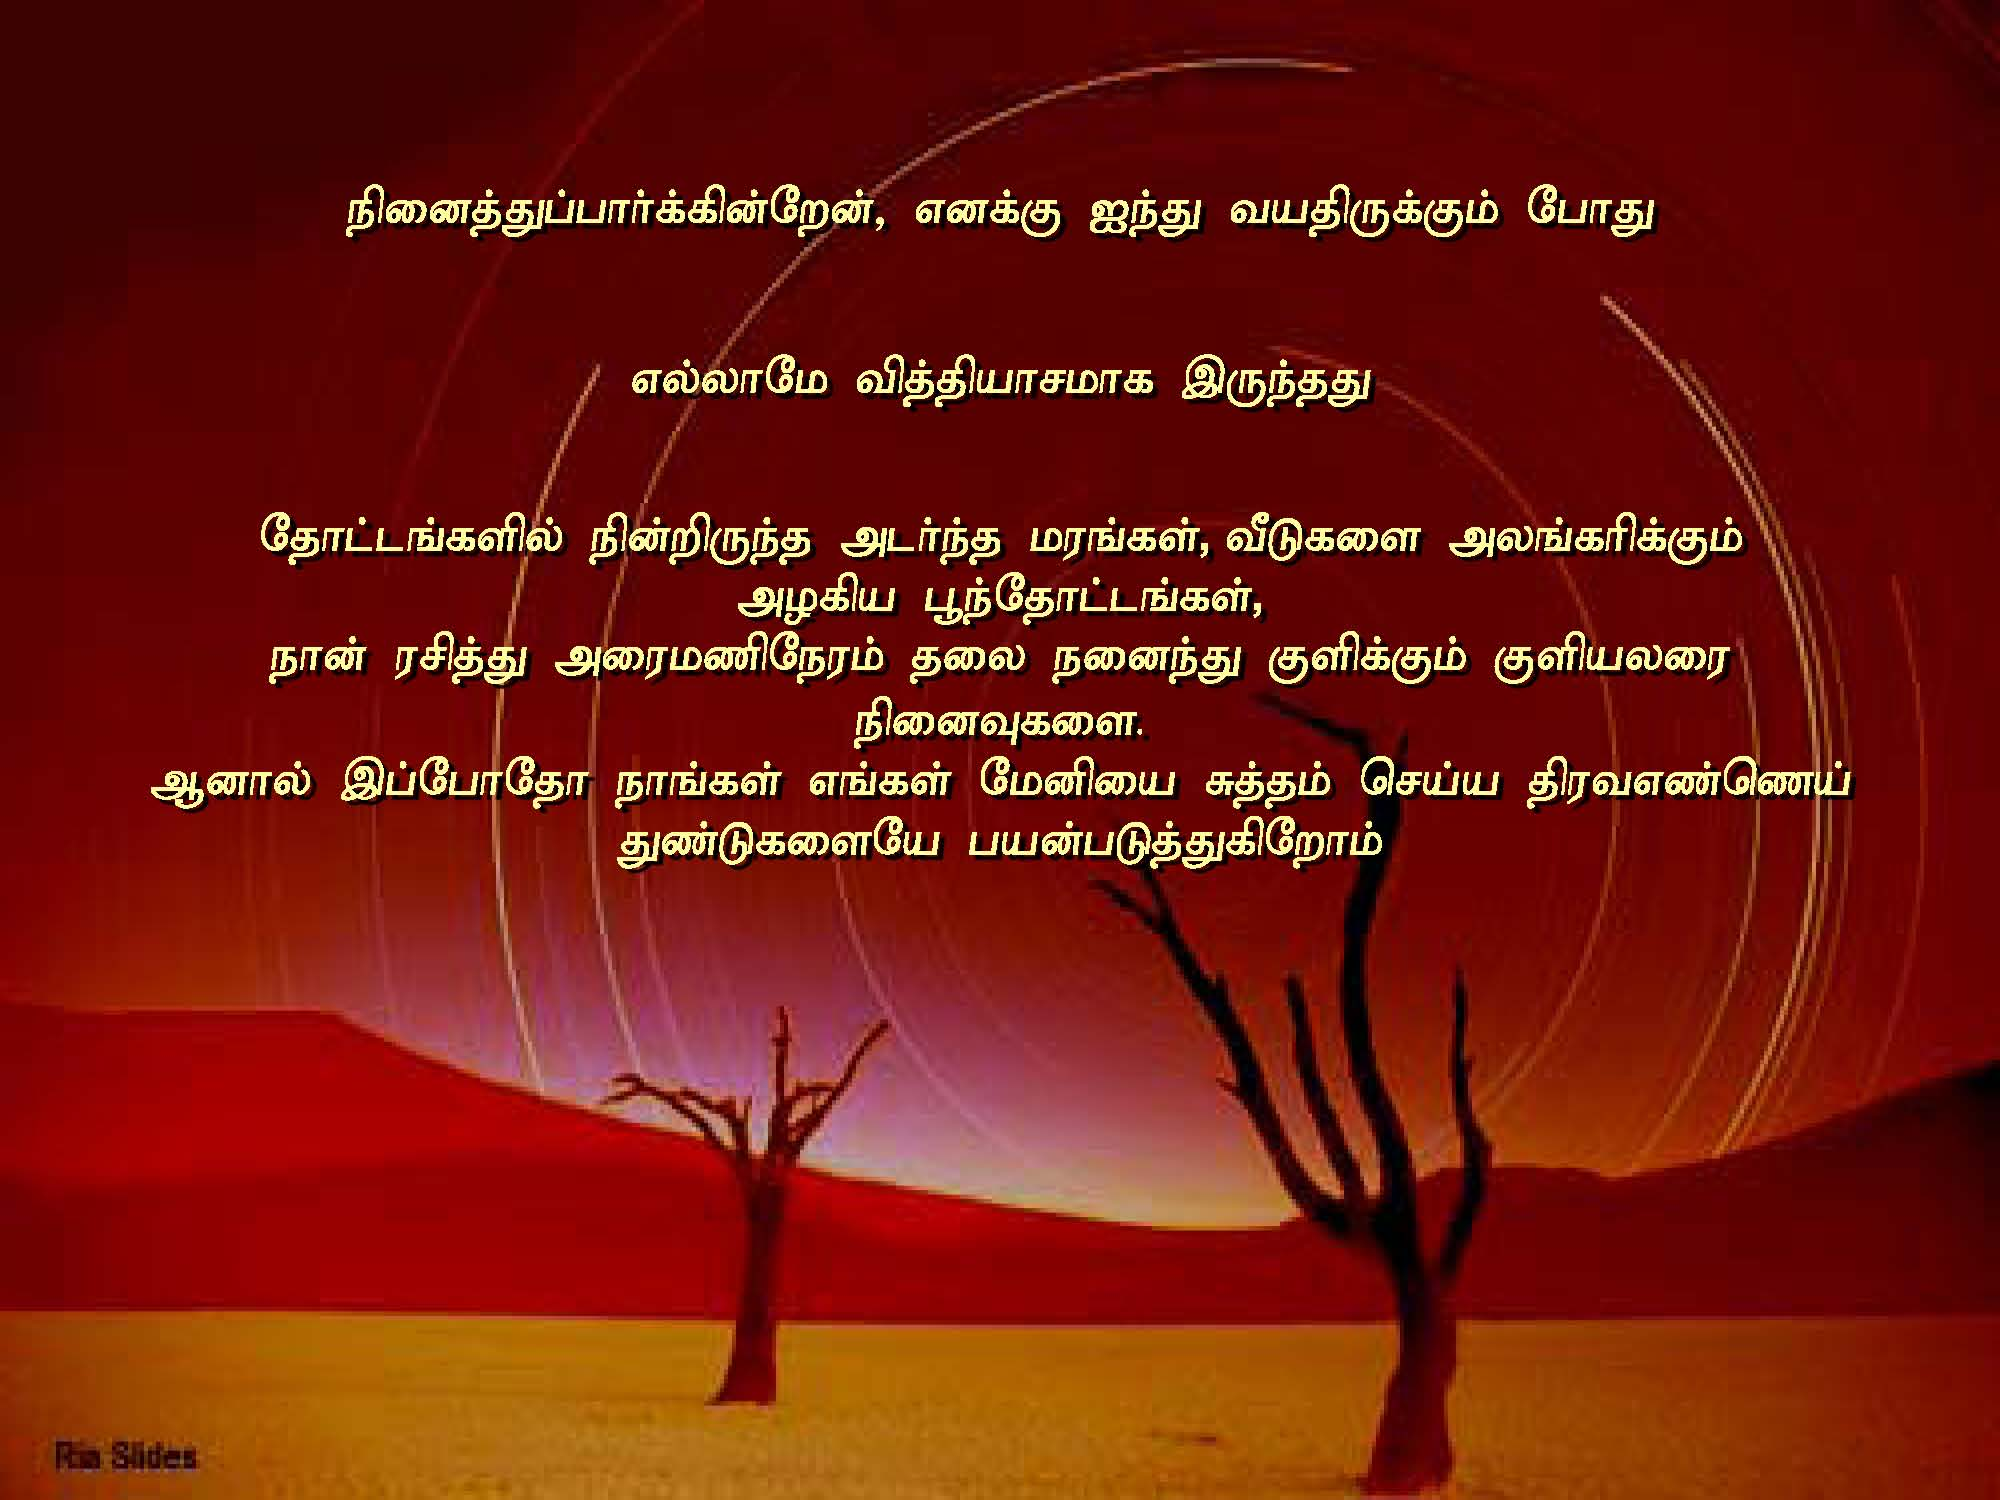 Related to Tamil Stories, Kathaikal Page, Tamil Short Stories Website